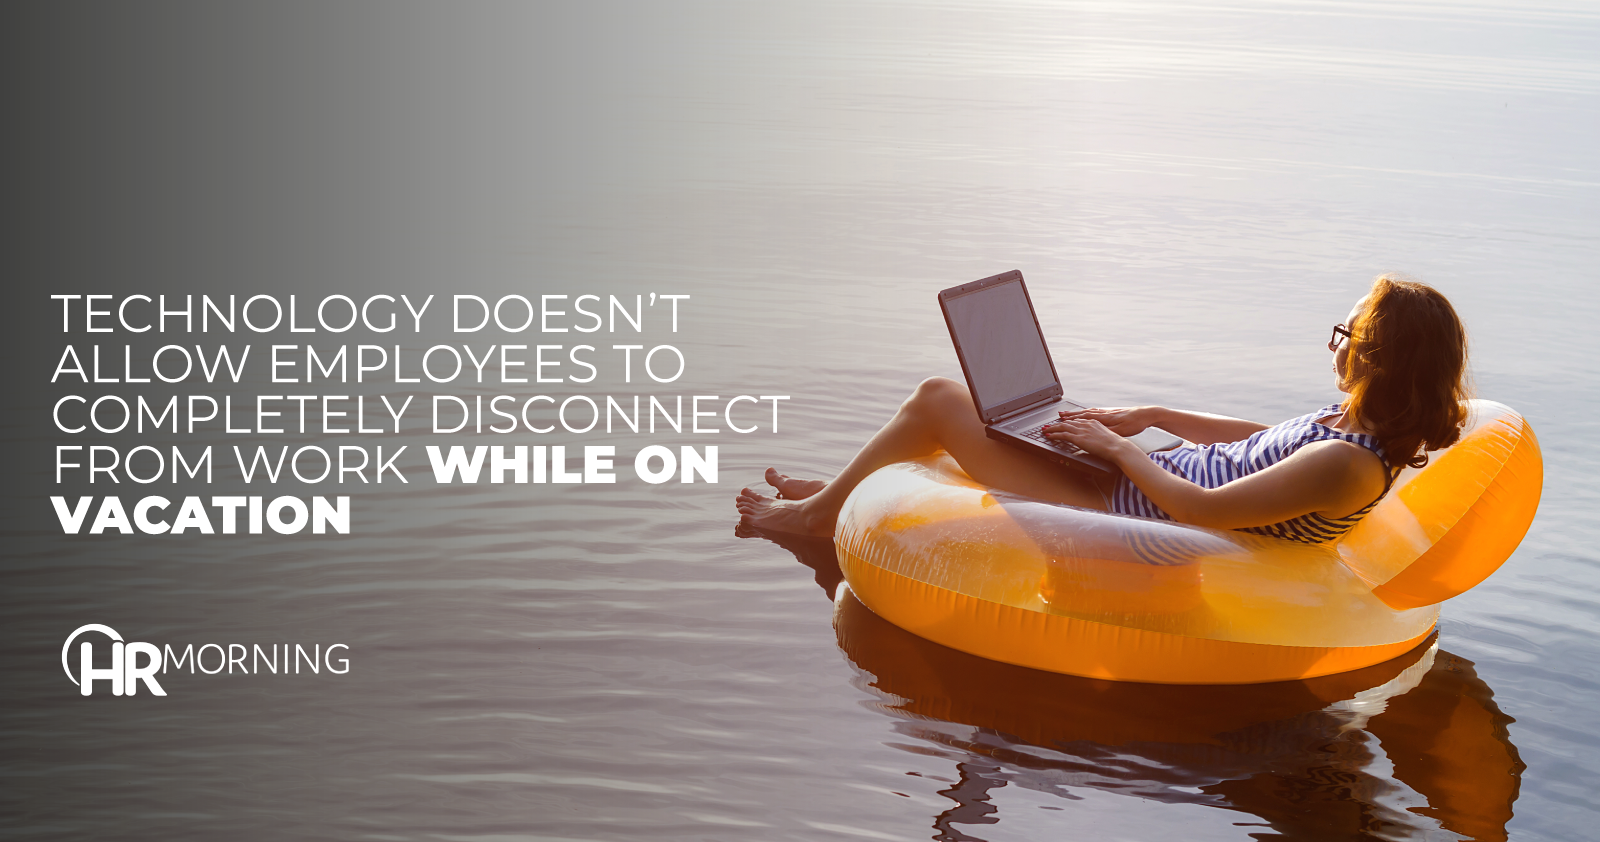 Technology Doesn't Allow Employees To Completely Disconnect From Work While On Vacation